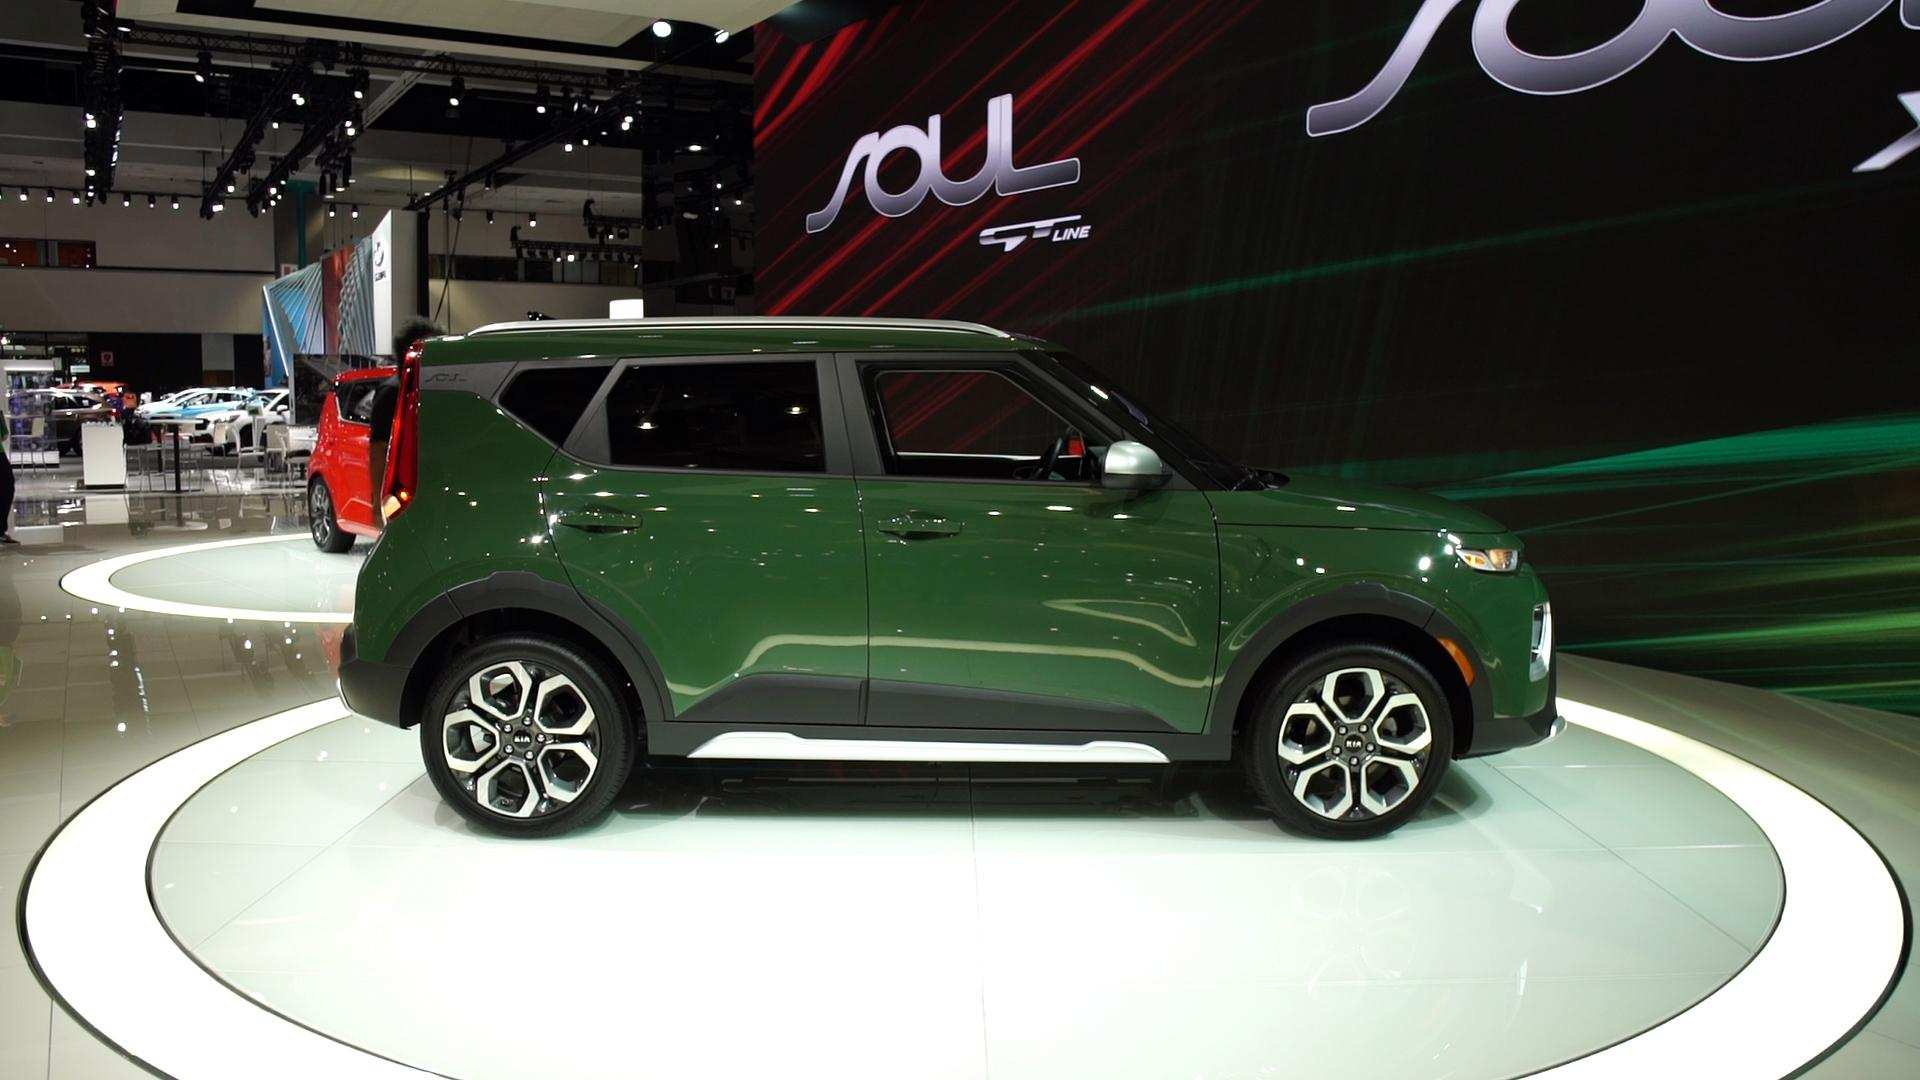 25 New Kia Soul 2020 You Tube Model